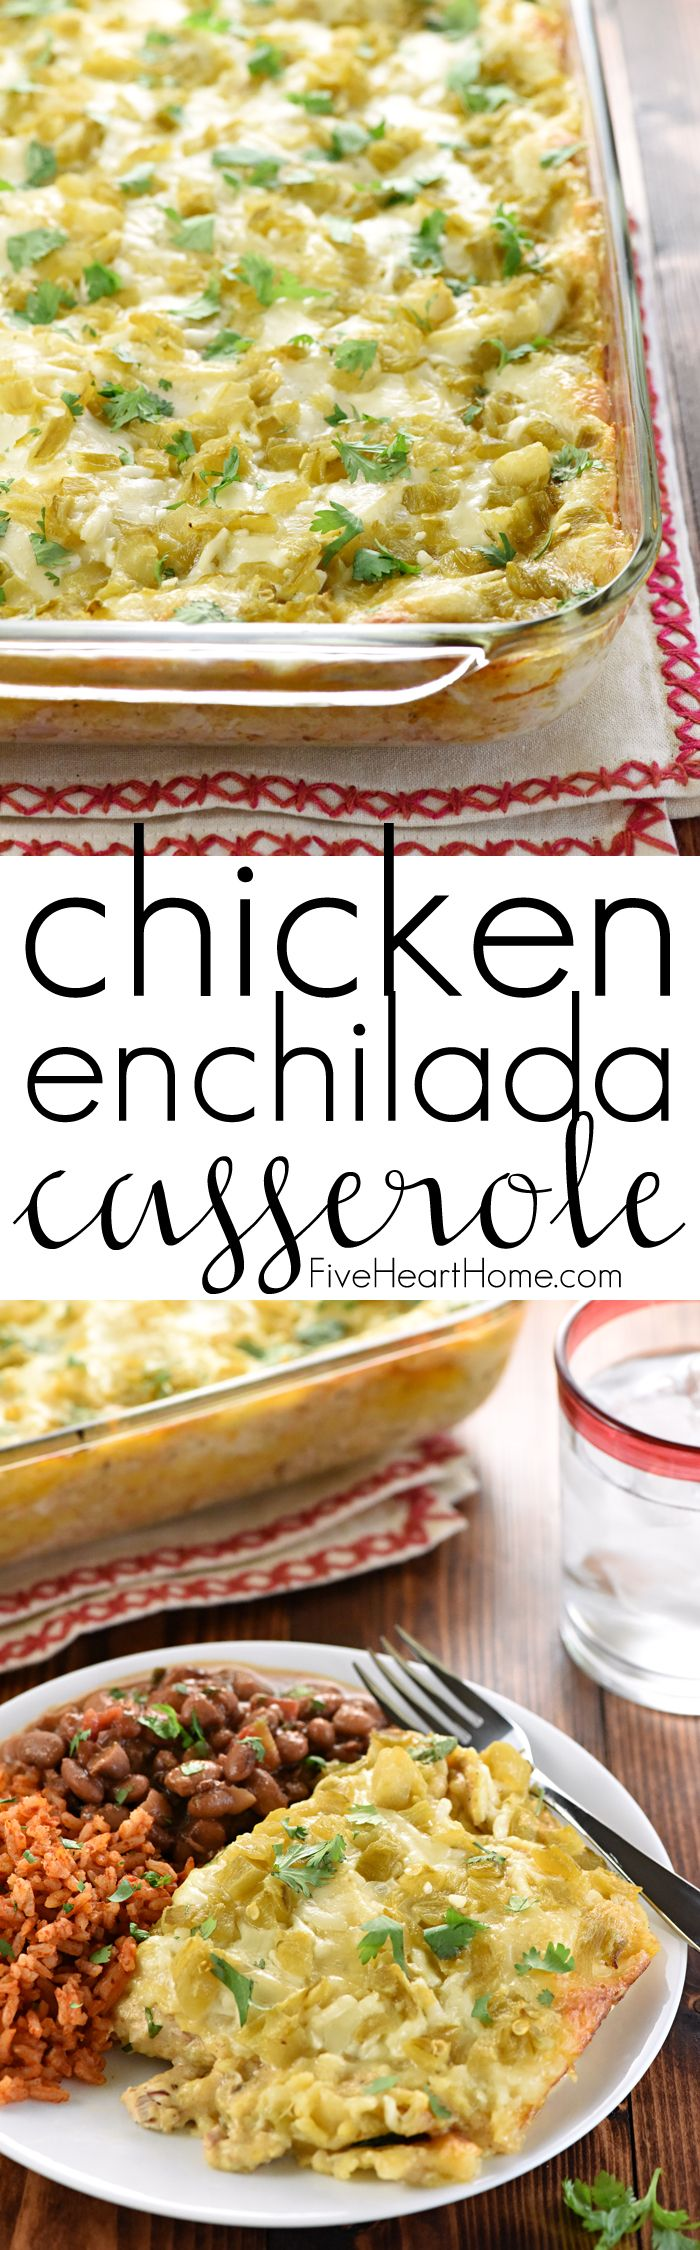 Chicken Enchilada Casserole ~ with all-natural ingredients like salsa verde, green chiles, and a creamy homemade sauce, this scrumptious stacked casserole recipe boast the great flavor of chicken enchiladas without the work of rolling them!